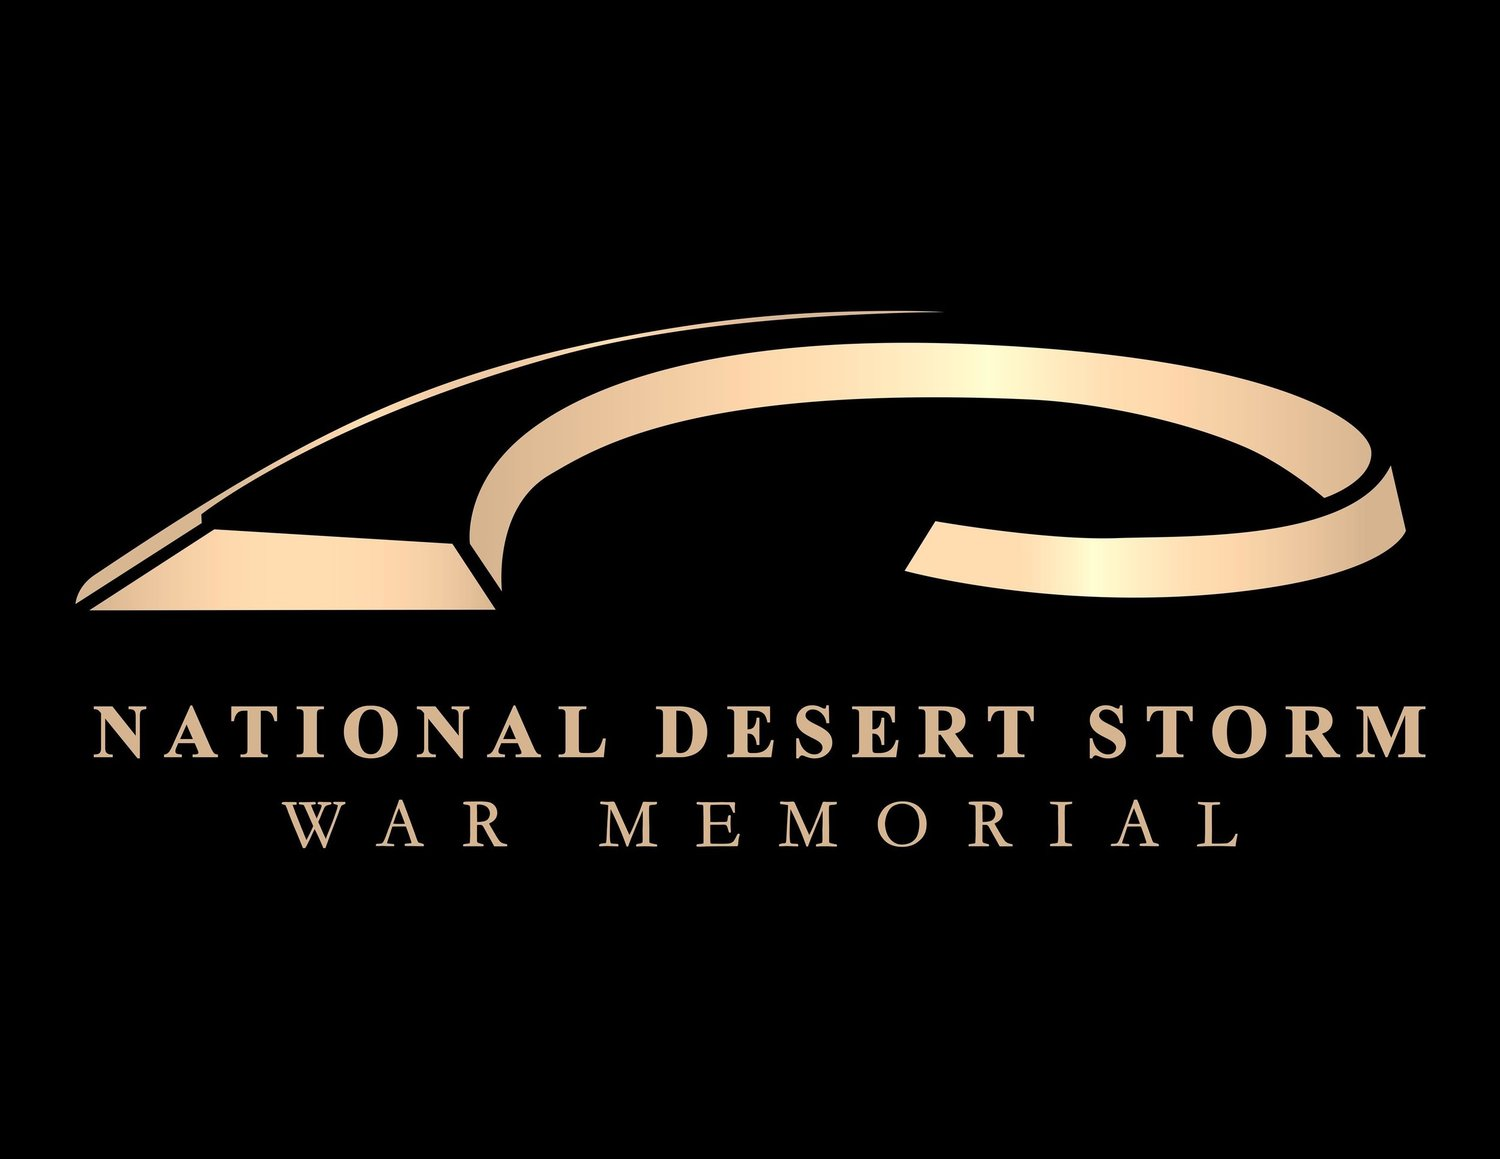 National Desert Storm War Memorial Receives Donation From Team Run Fierce!